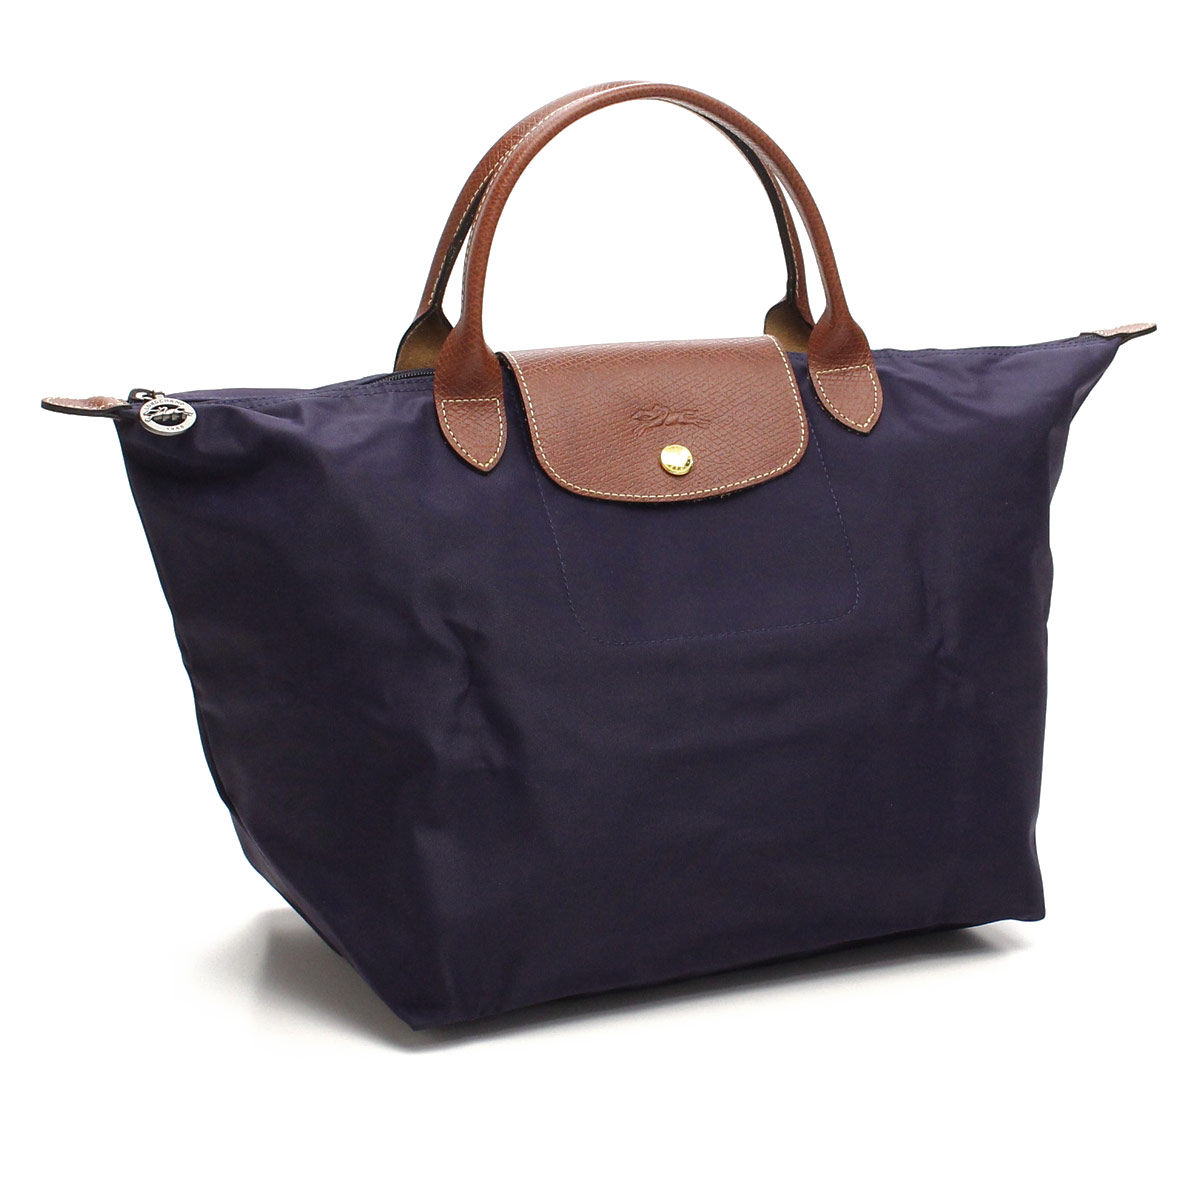 Bighit The total brand wholesale: (LONGCHAMP) Longchamp PLIAGE tote bag 1623  089 645 Purple system( taxfree/send by EMS/authentic/A brand new item ) ...